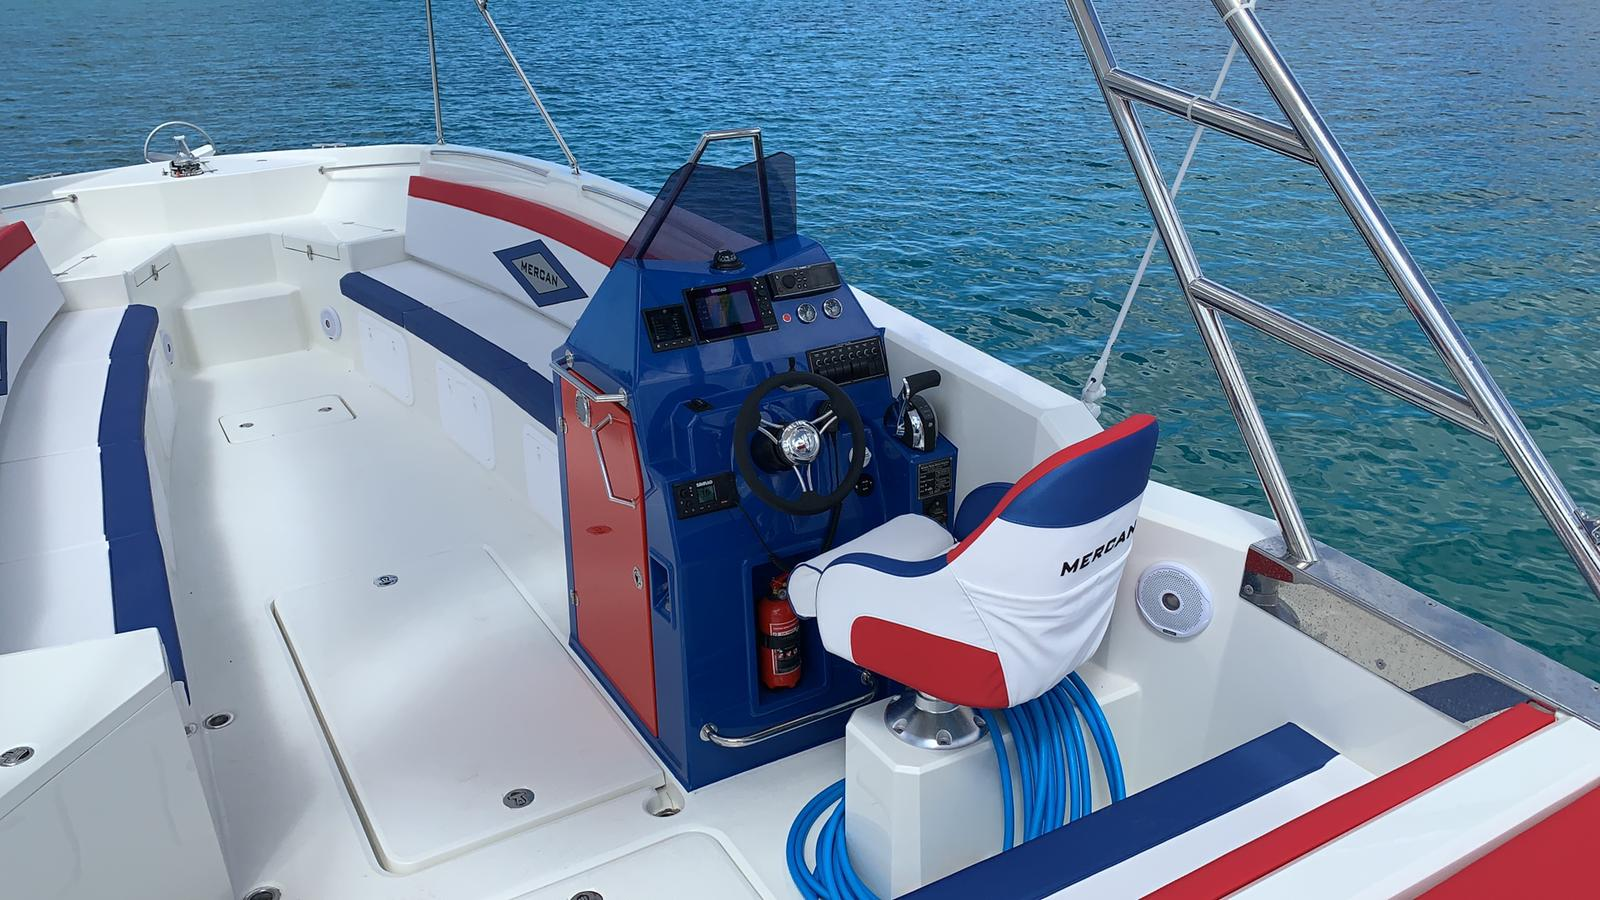 mercan-yachting-excursion-36 6